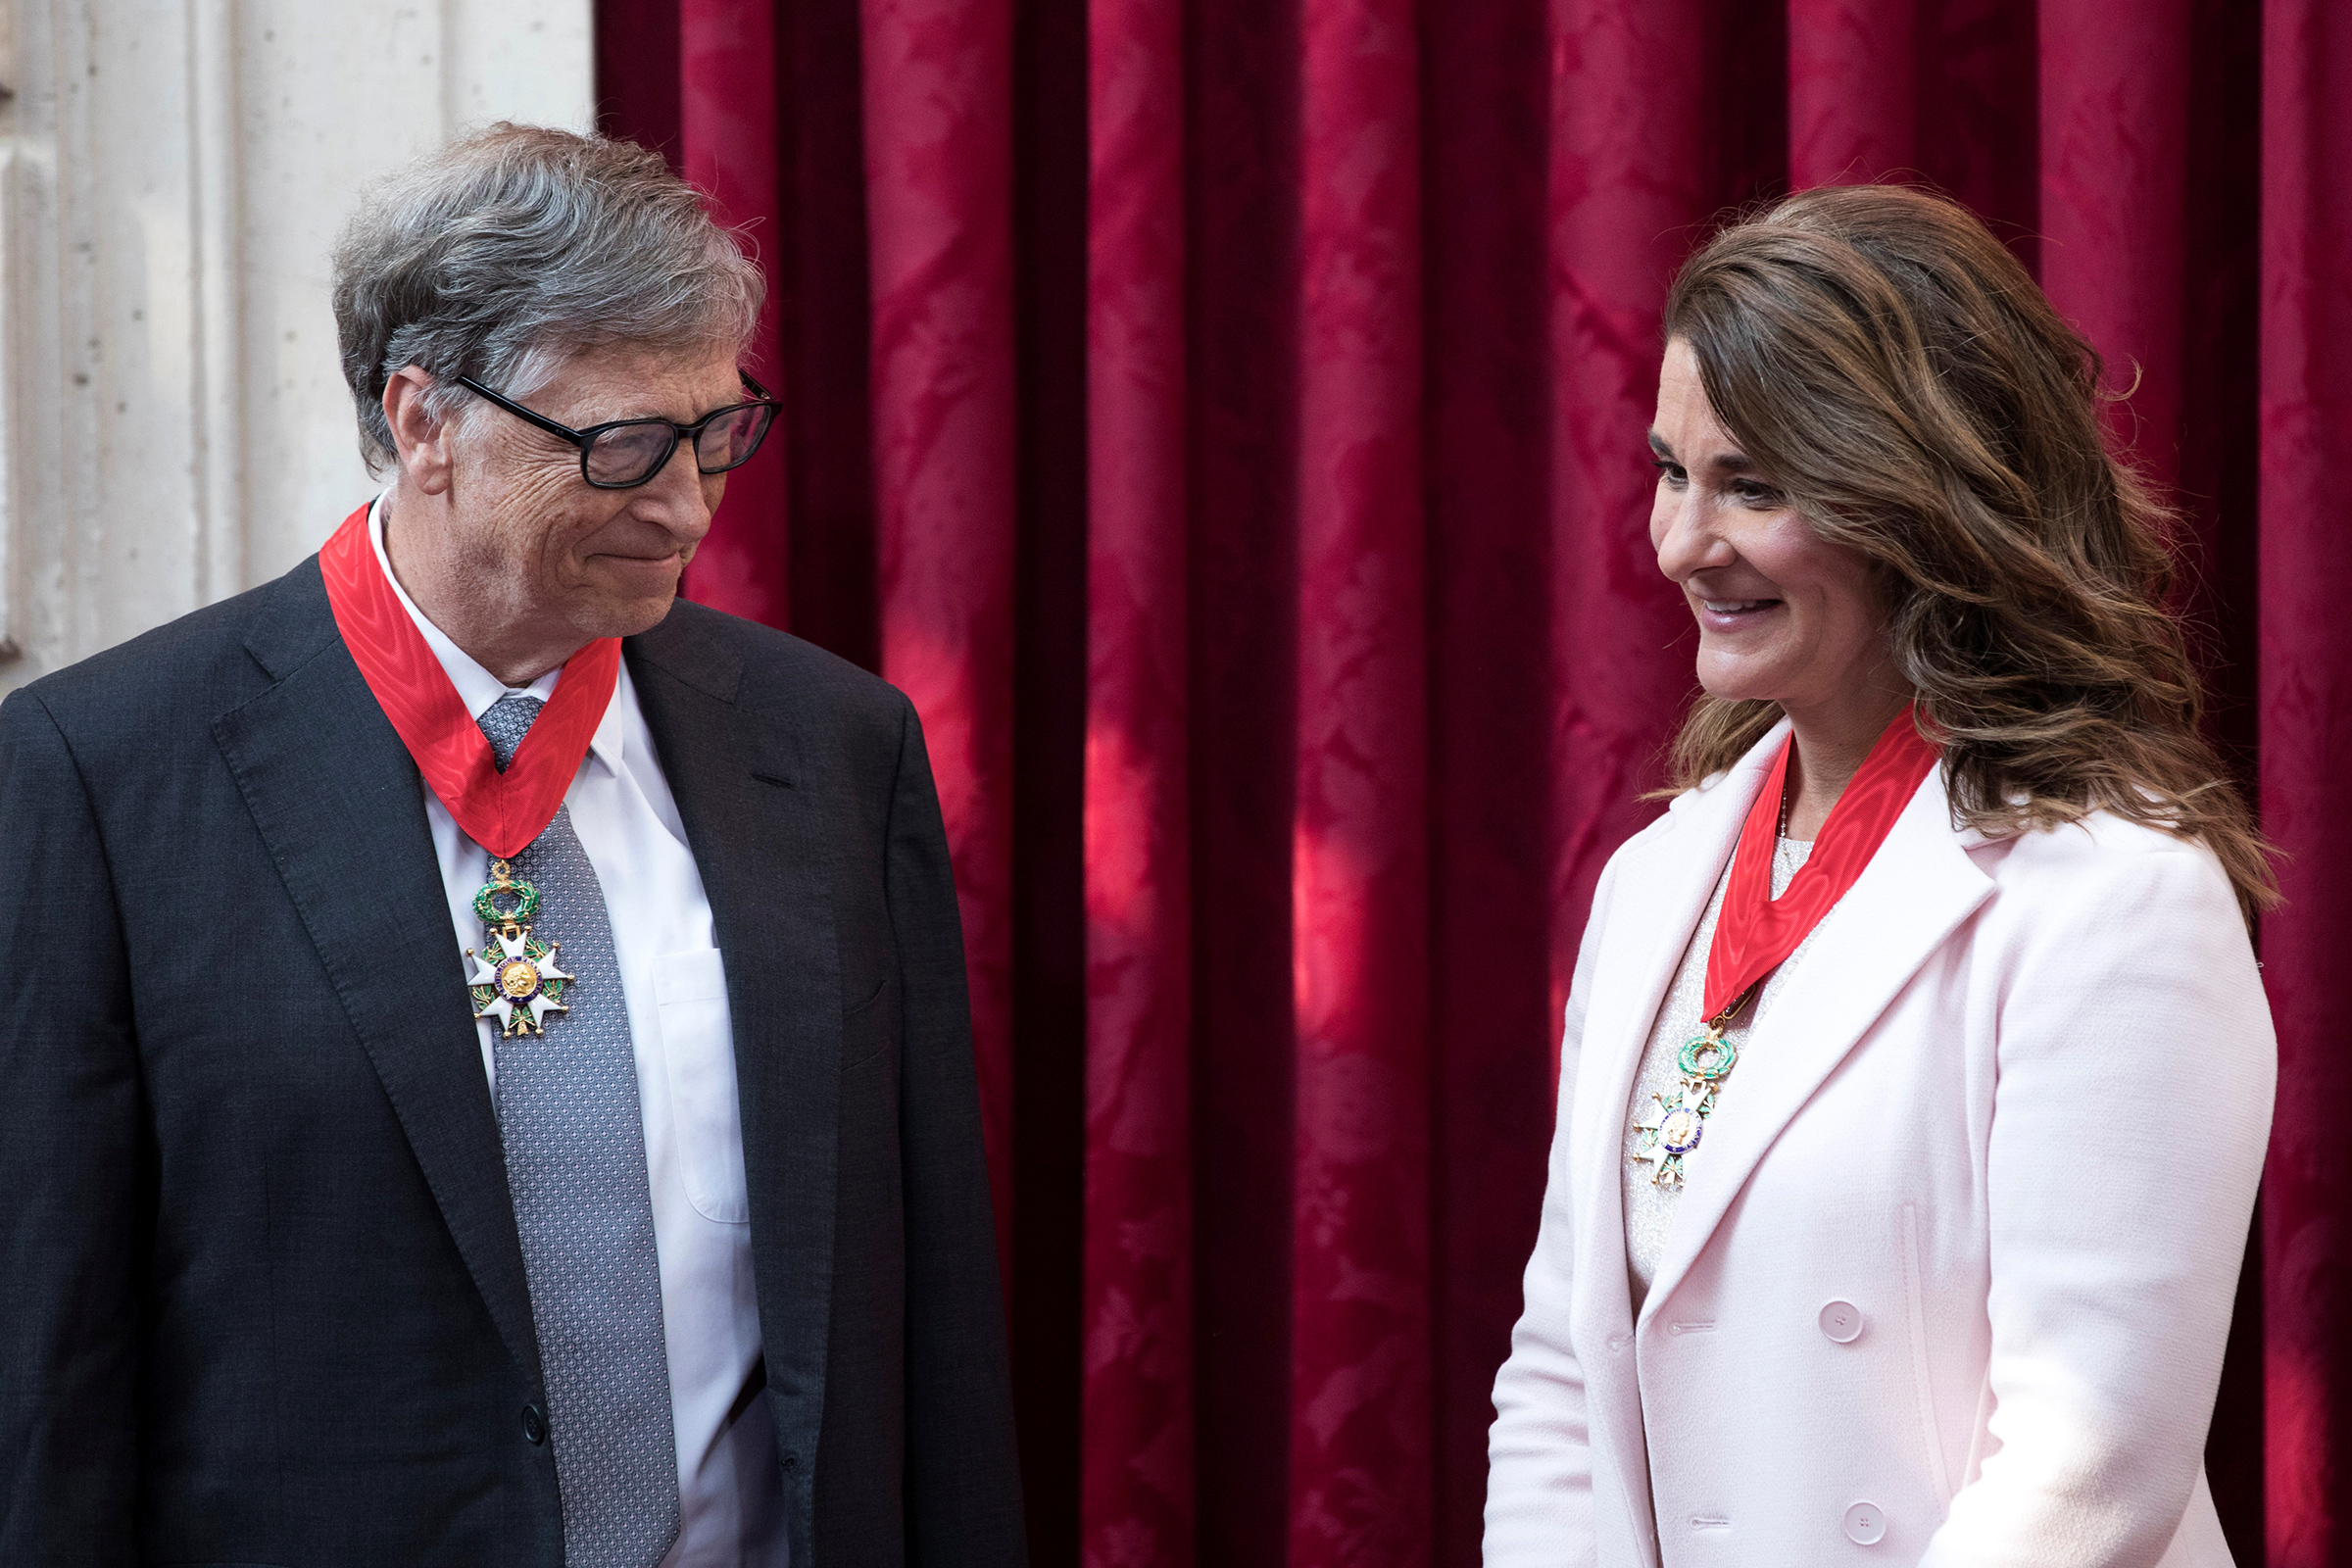 Bill Gates and Melinda Gates after being awarded Commanders of the Legion of Honor at the Élysée Palace in Paris on April 21, 2017.